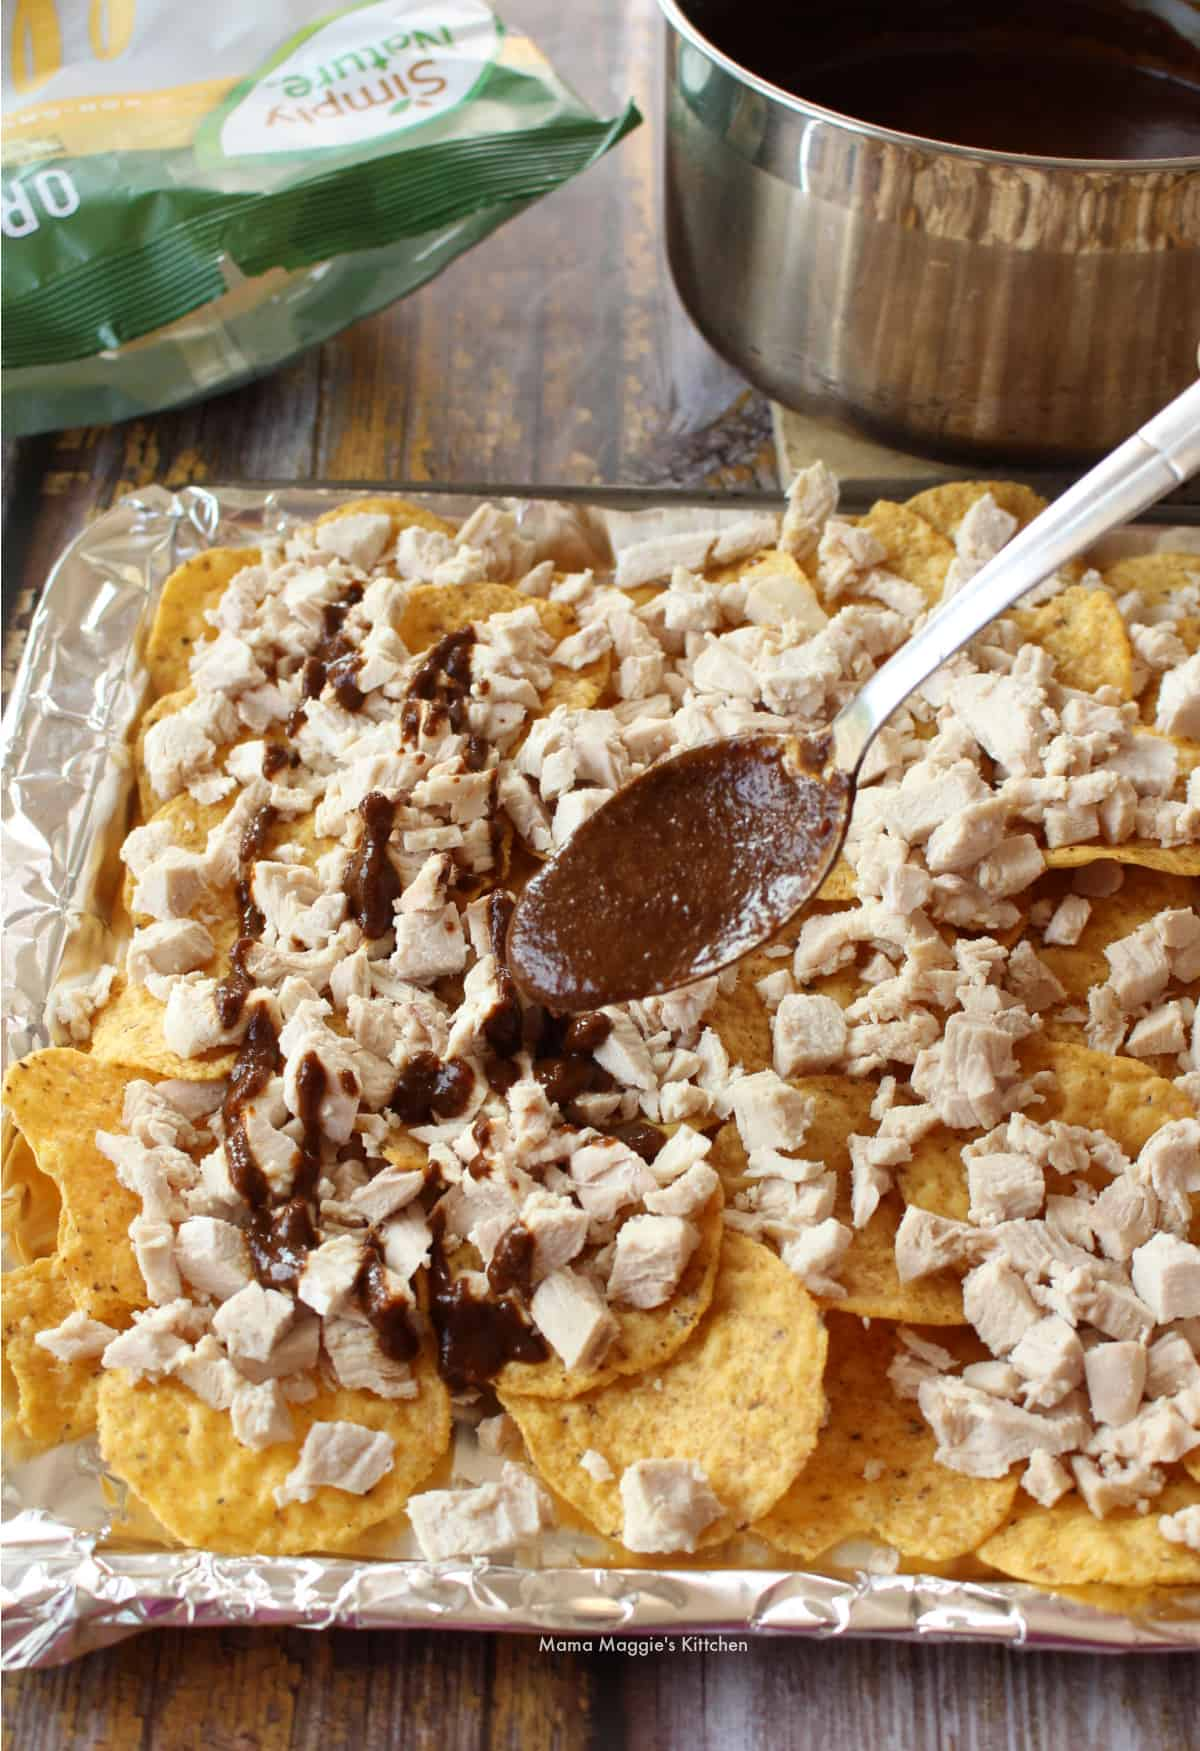 A spoon with mole sauce over a sheet pan with tortilla chips and chicken.